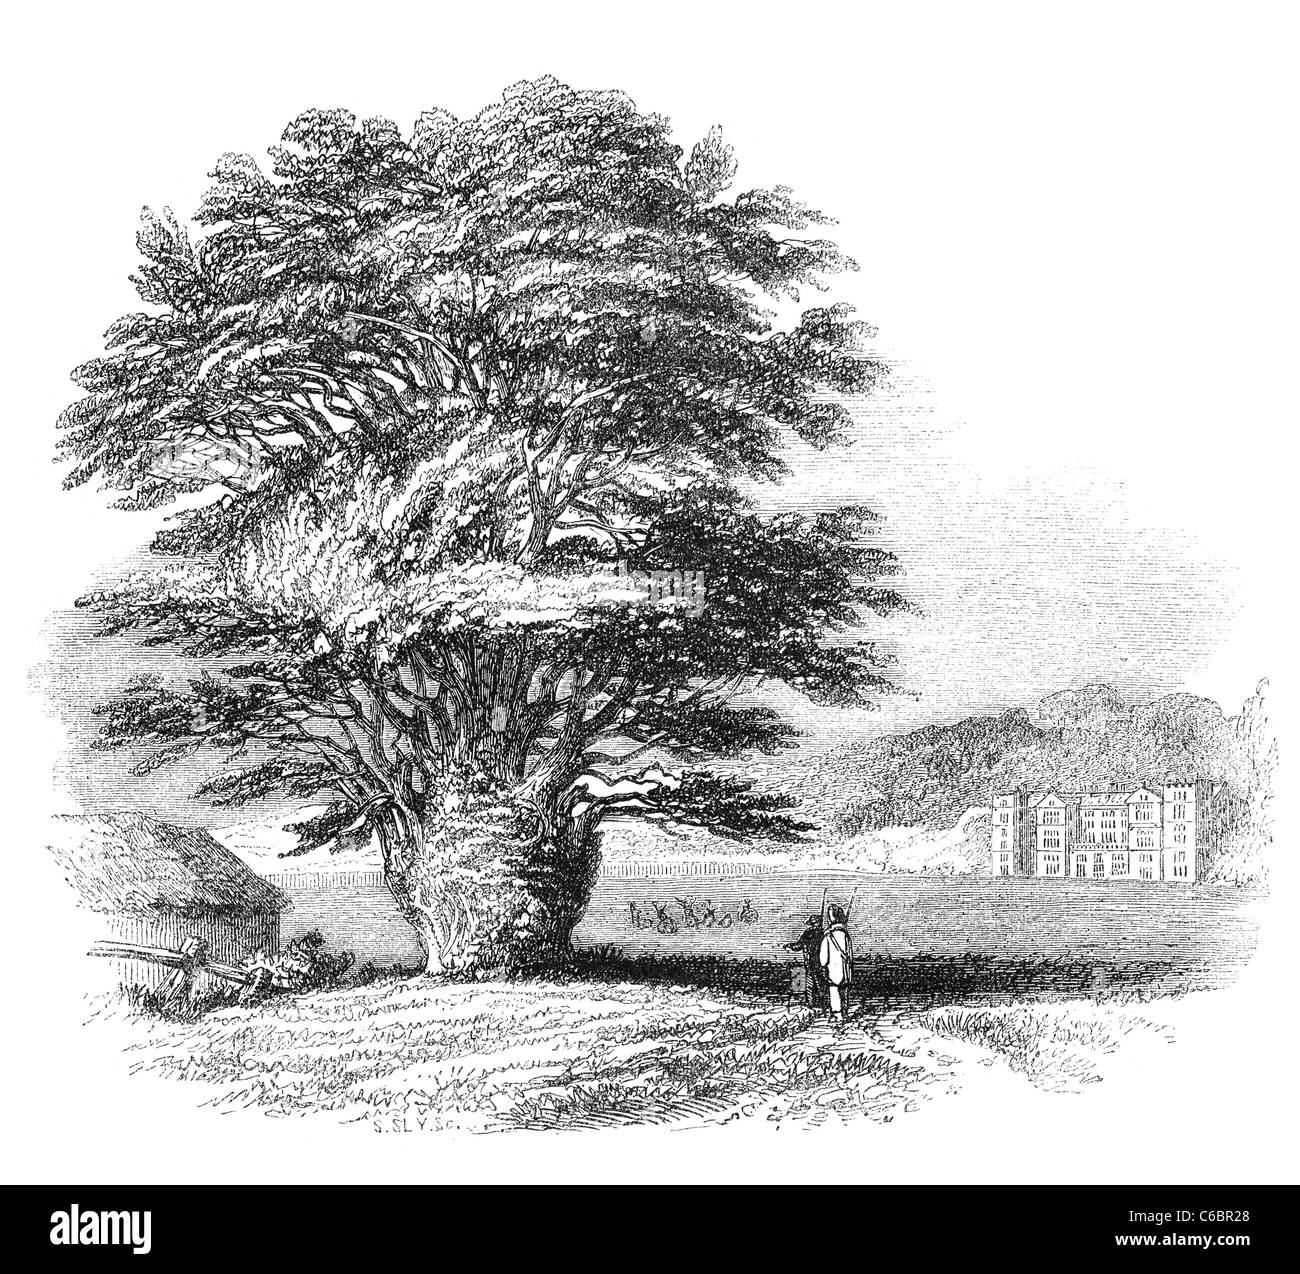 Yew-tree at Fountain Abbey, RIpon, Yorkshire. Engraving from a british magazine printed in 1843. - Stock Image